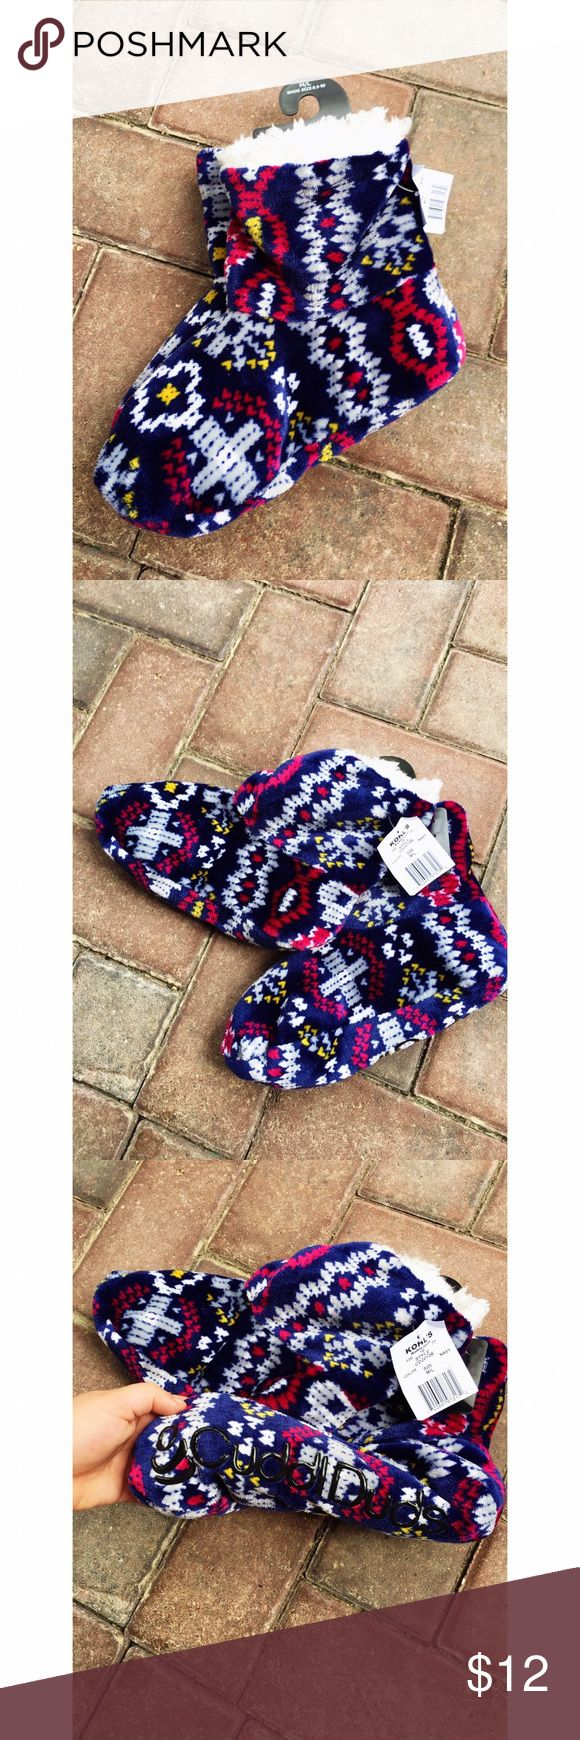 Fuzzy Slippers- NWT Fuzzy Slippers from Kohls - NWT - M/L Shoe Size 8.5-10 - Smoke & Pet & Pet Free Home 💕 Shoes Slippers